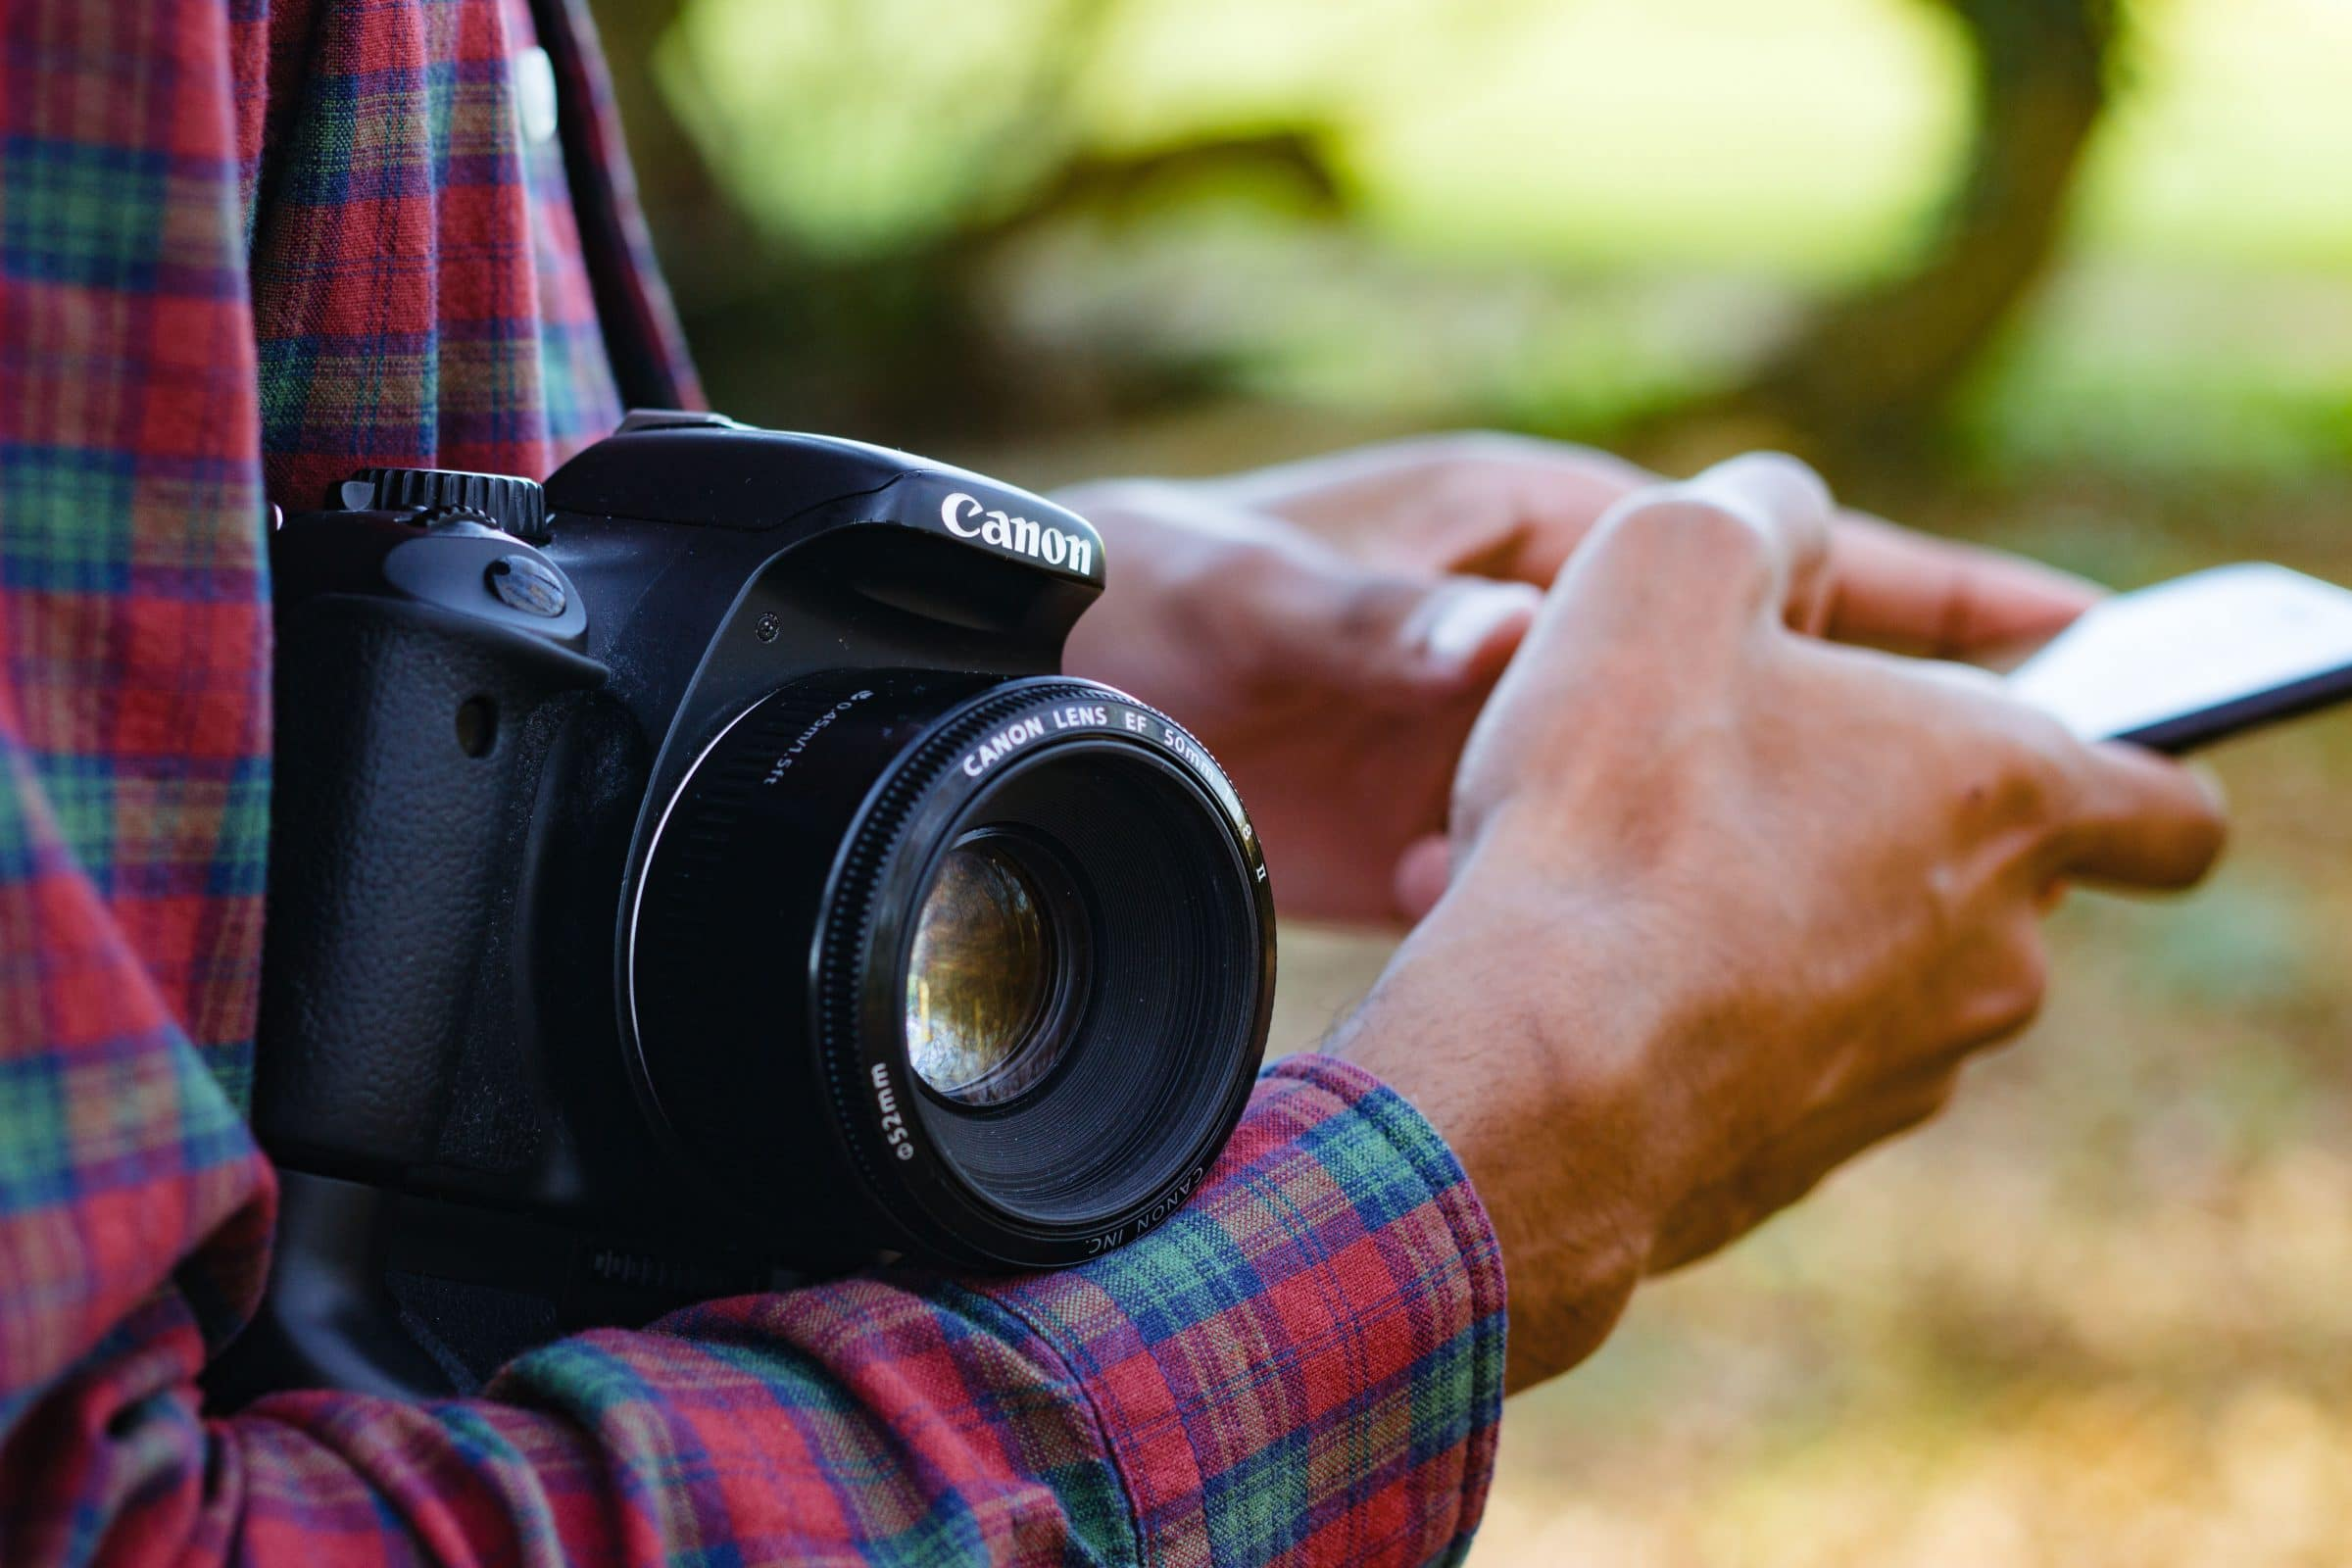 10 Things Every Photographer Should Bring to a Portrait Session